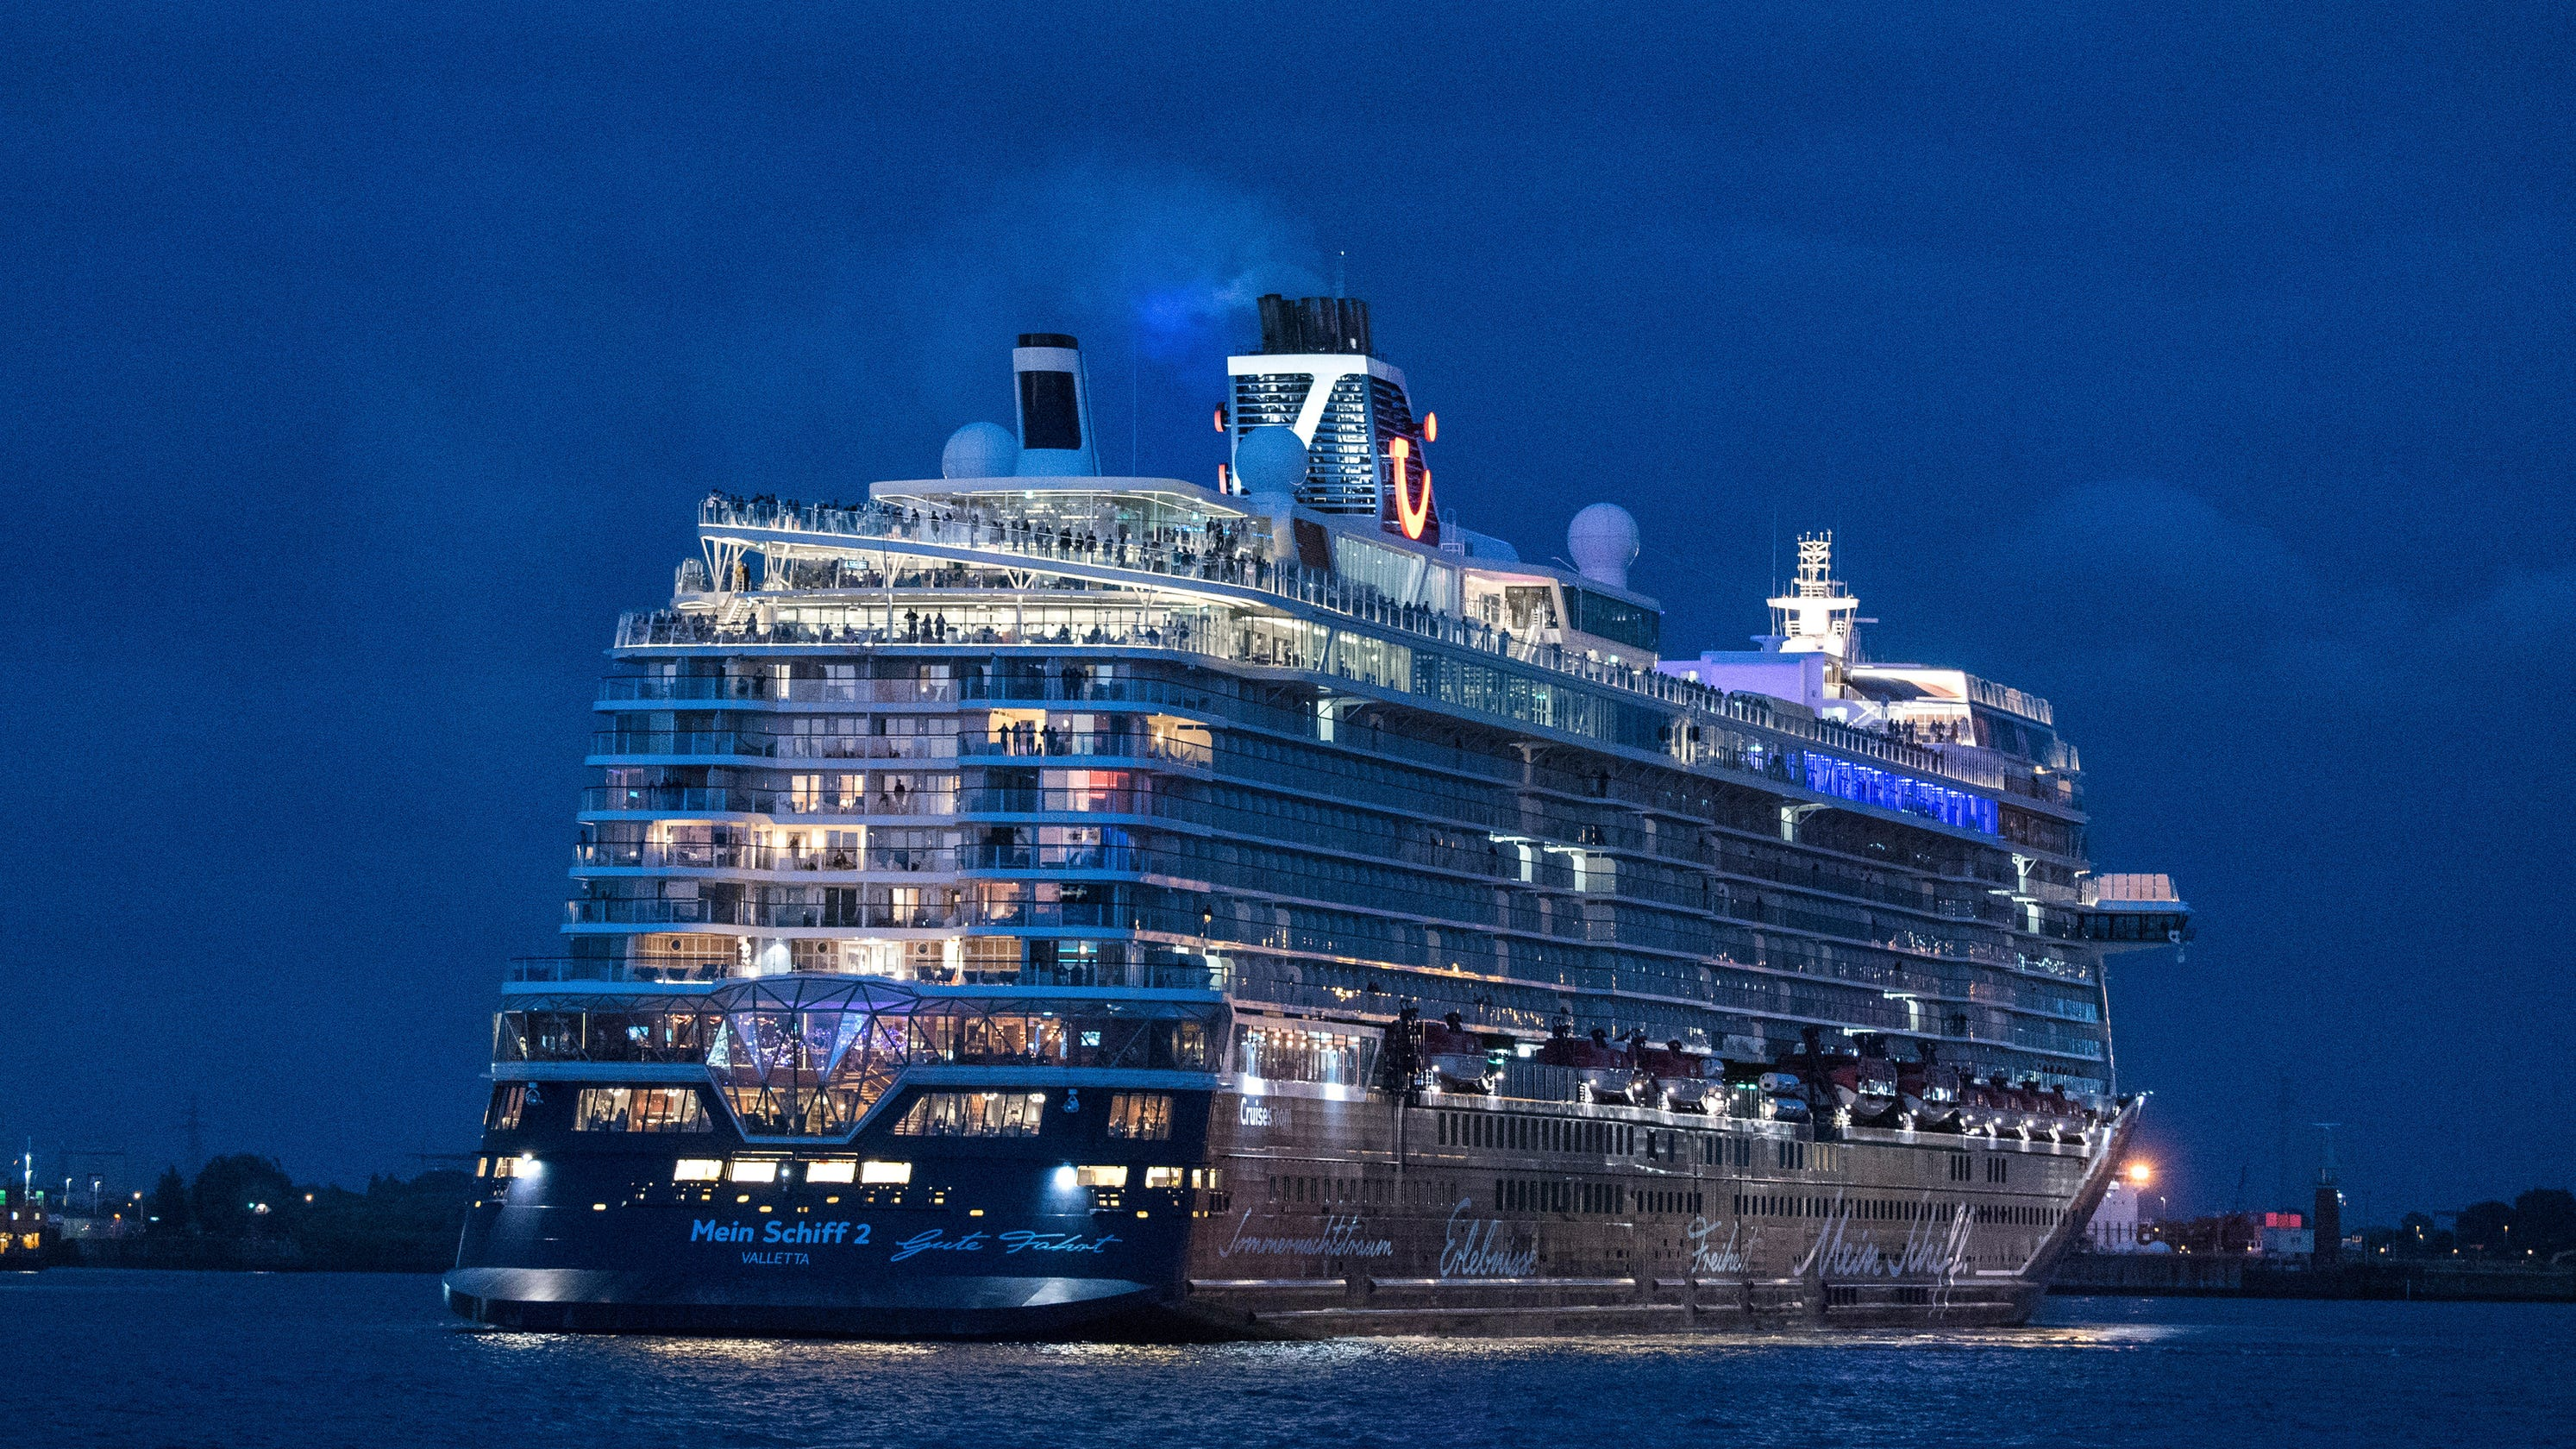 TUI Cruises' Mein Schiff 2 sails on return voyage with 1,200 people